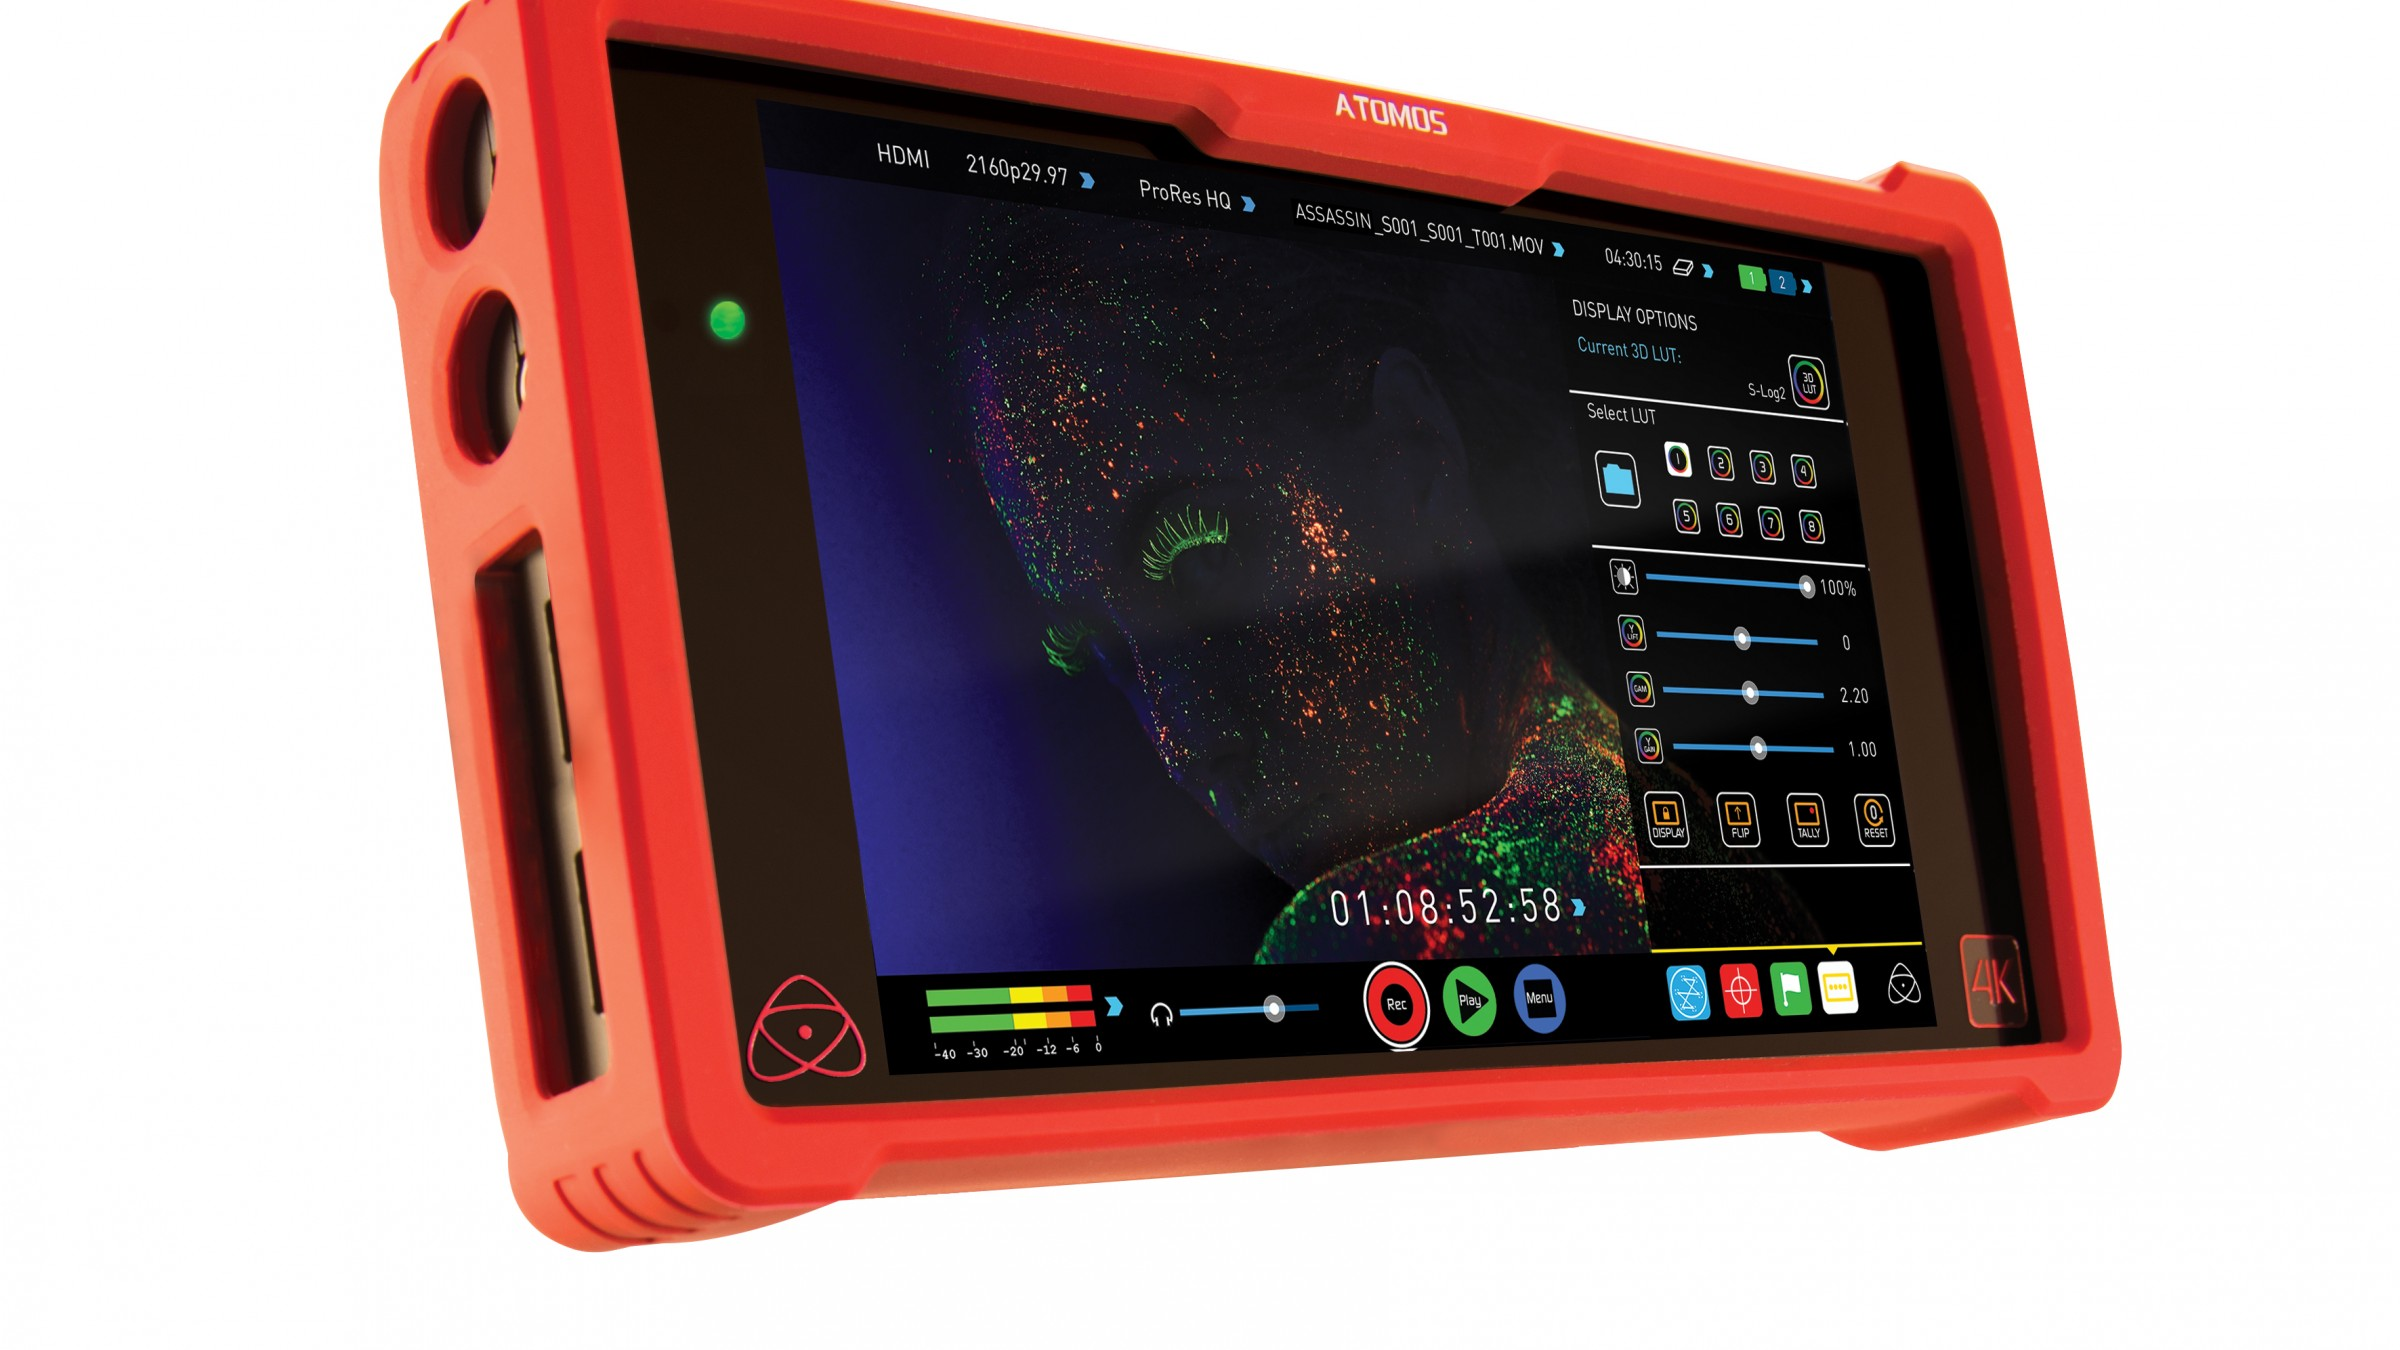 Atomos Announces Their Brand New 4K Recorder, the Light & Affordable